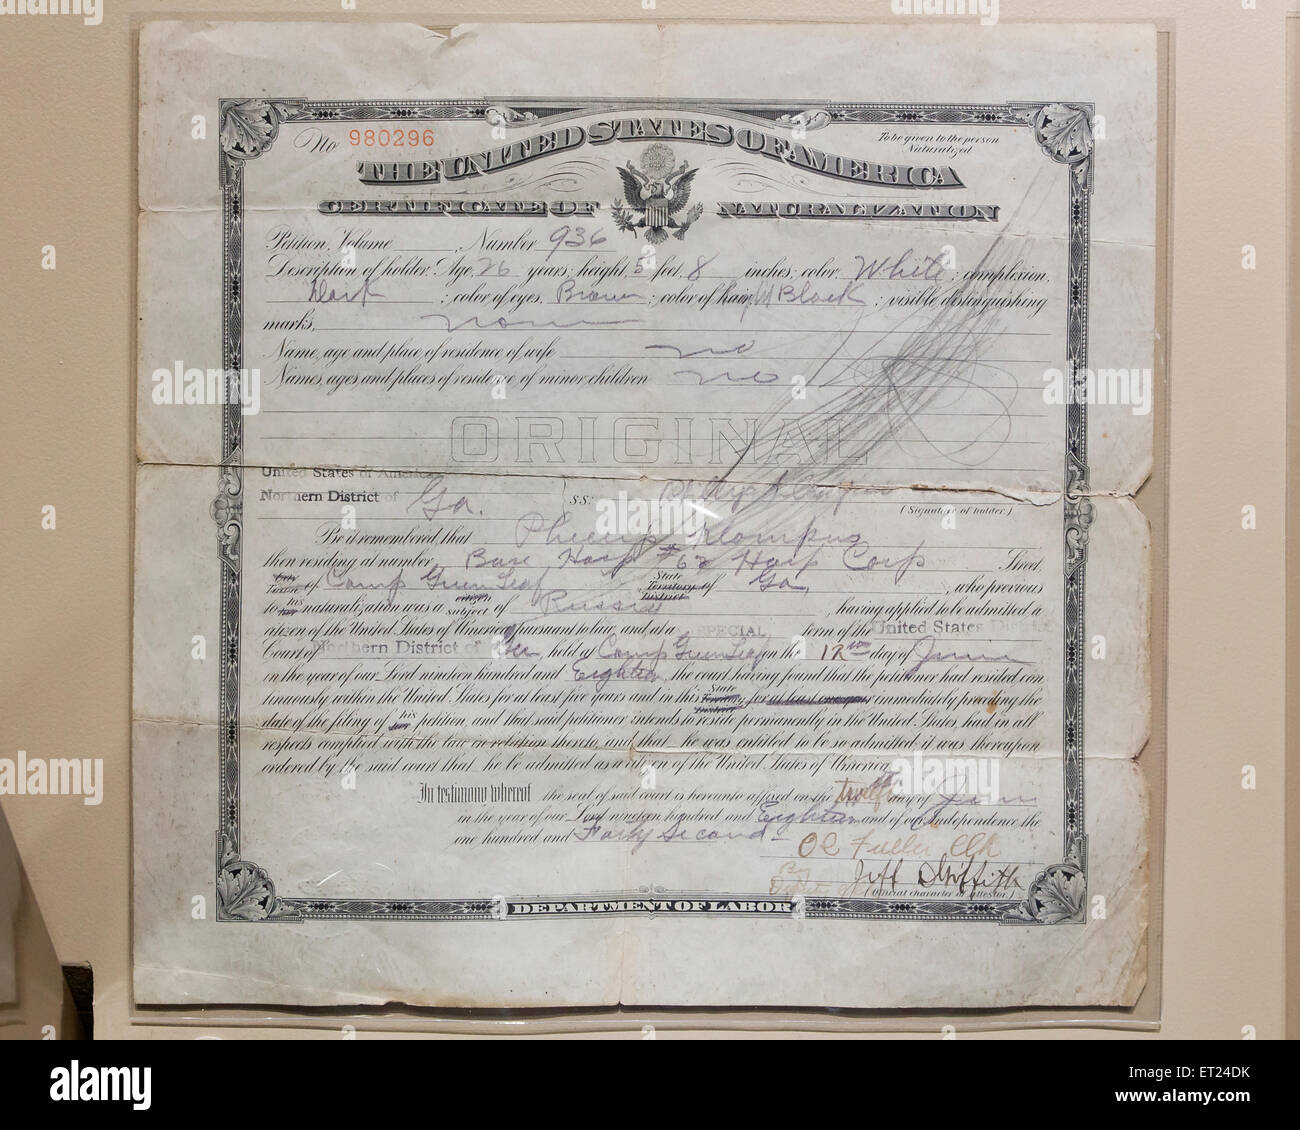 Vintage Certificat de naturalisation, vers 1930 - USA Photo Stock